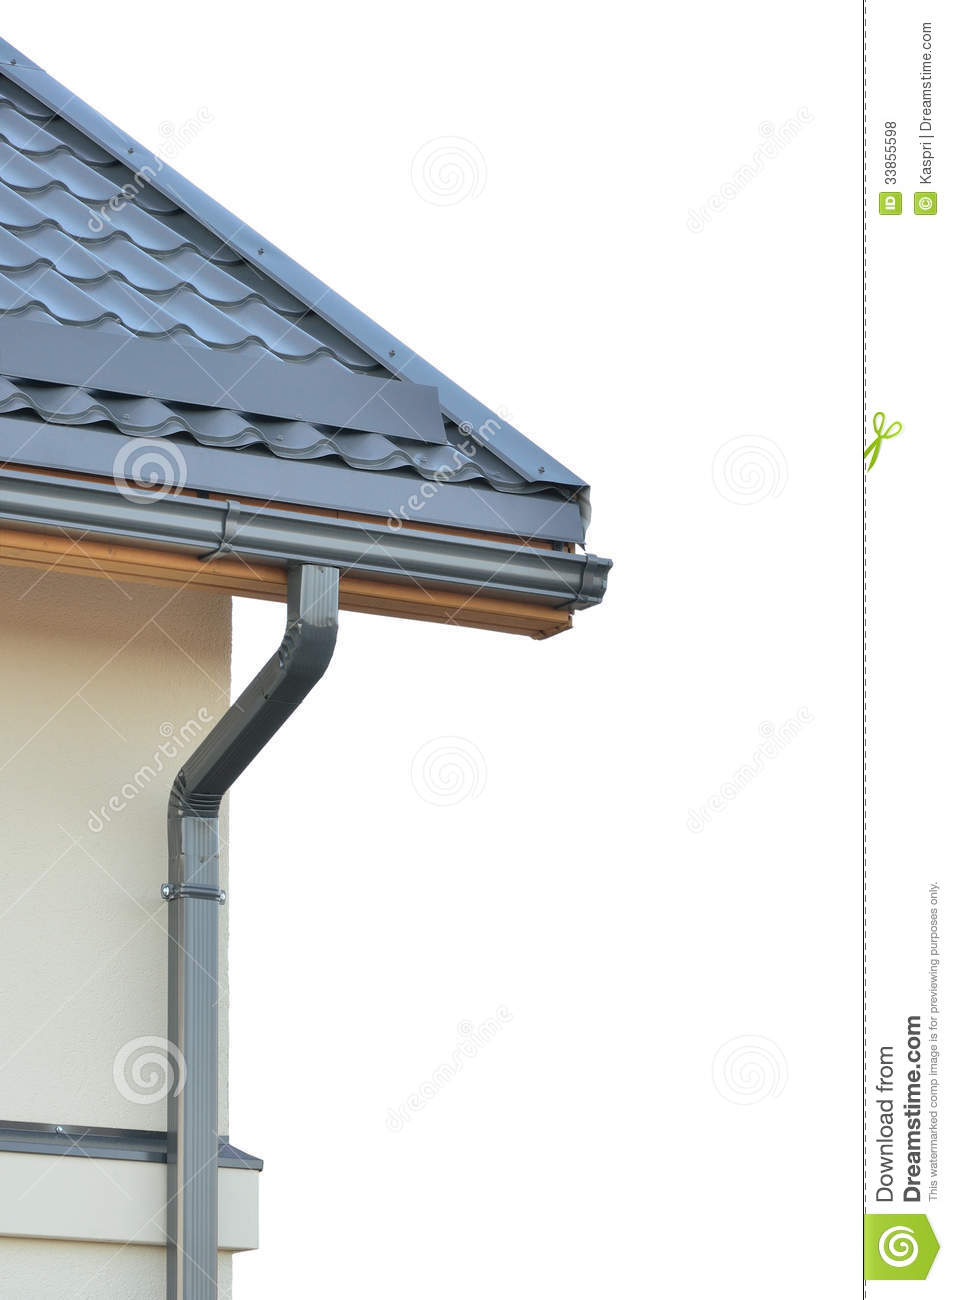 Roof Gutters Clipart 20 Free Cliparts Download Images On